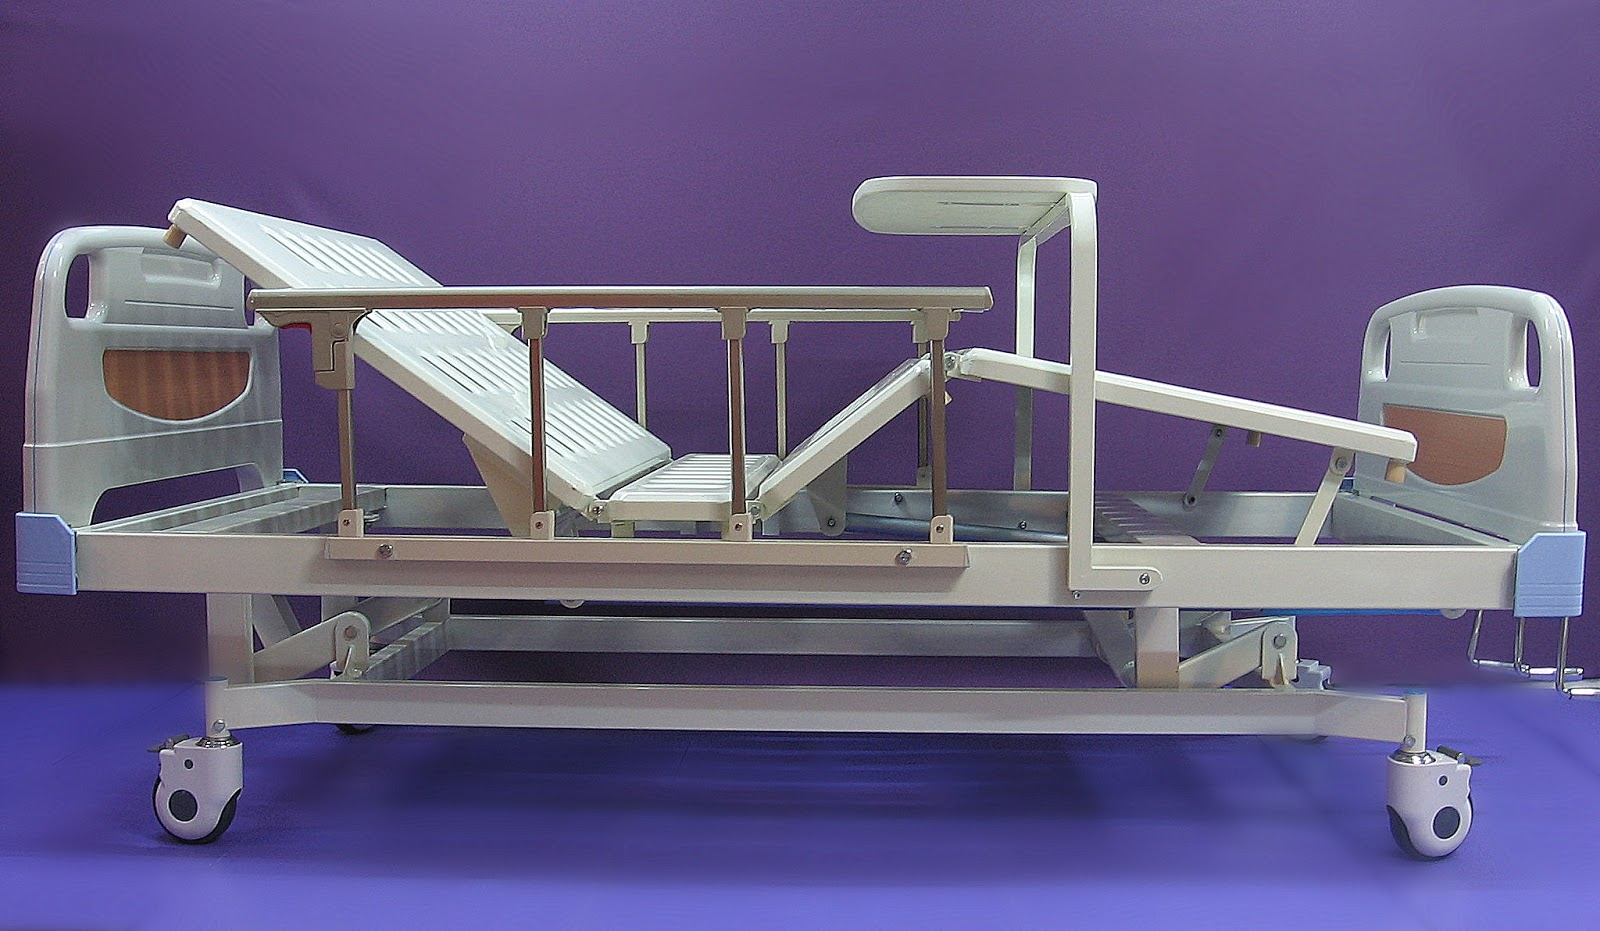 5. Hospital bed HI-LO manual three functions 三功能 手动 医院床 整張床面可調高低